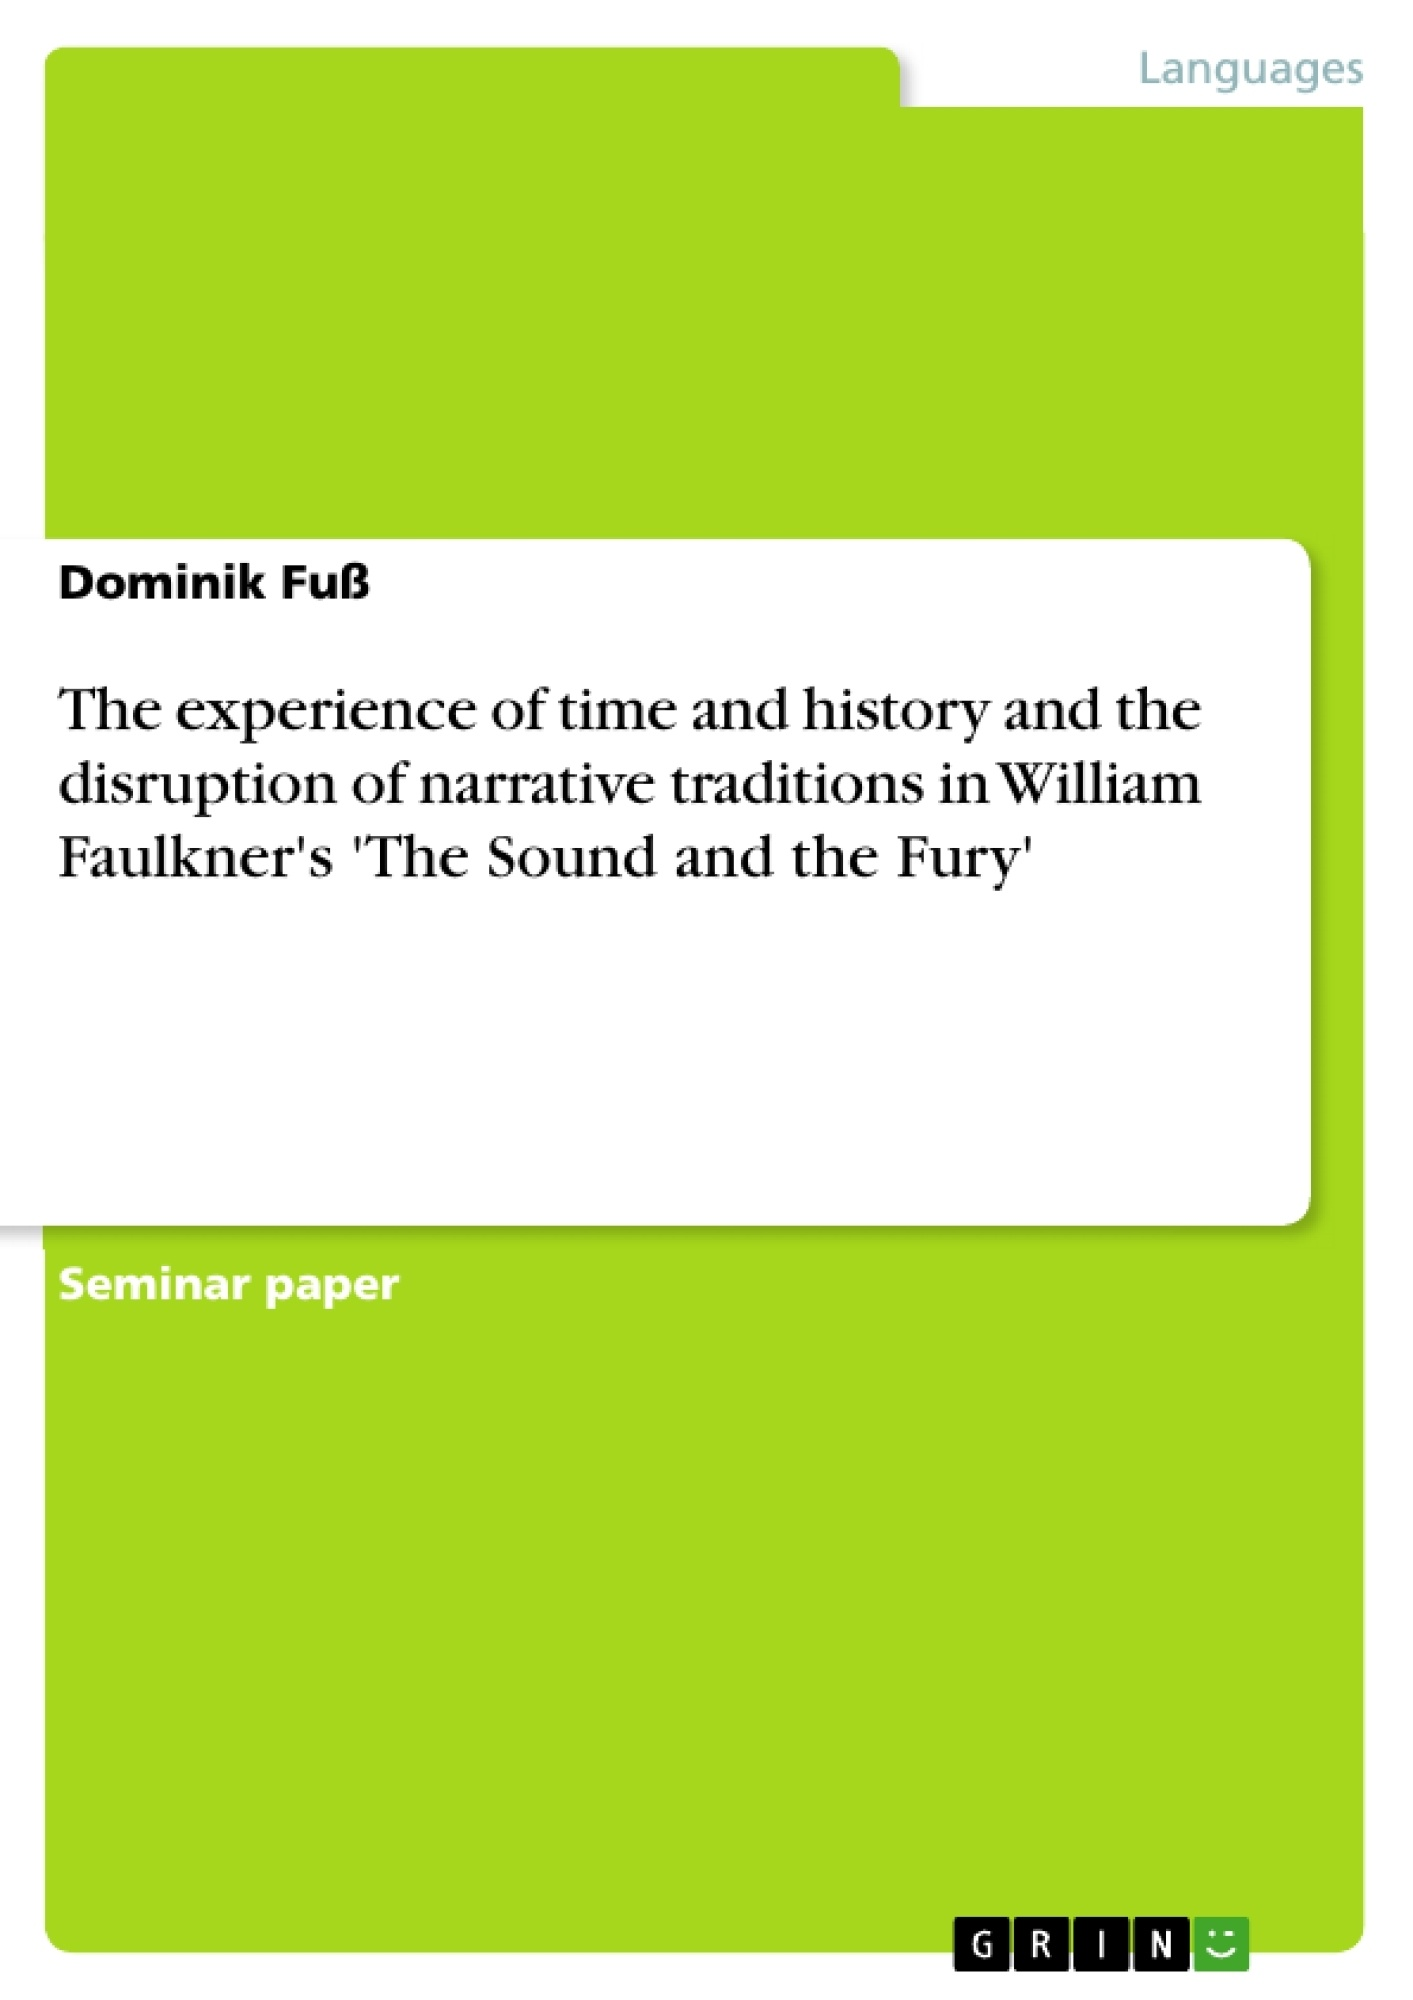 william faulkners as i lay dying essay The subversion of the epic in william faulkner's as i lay dying william faulkner's as i lay dying is a modernist masterpiece, where most of the conventions of the epic genre are overthrown - the subversion of the epic in william faulkner's as i.